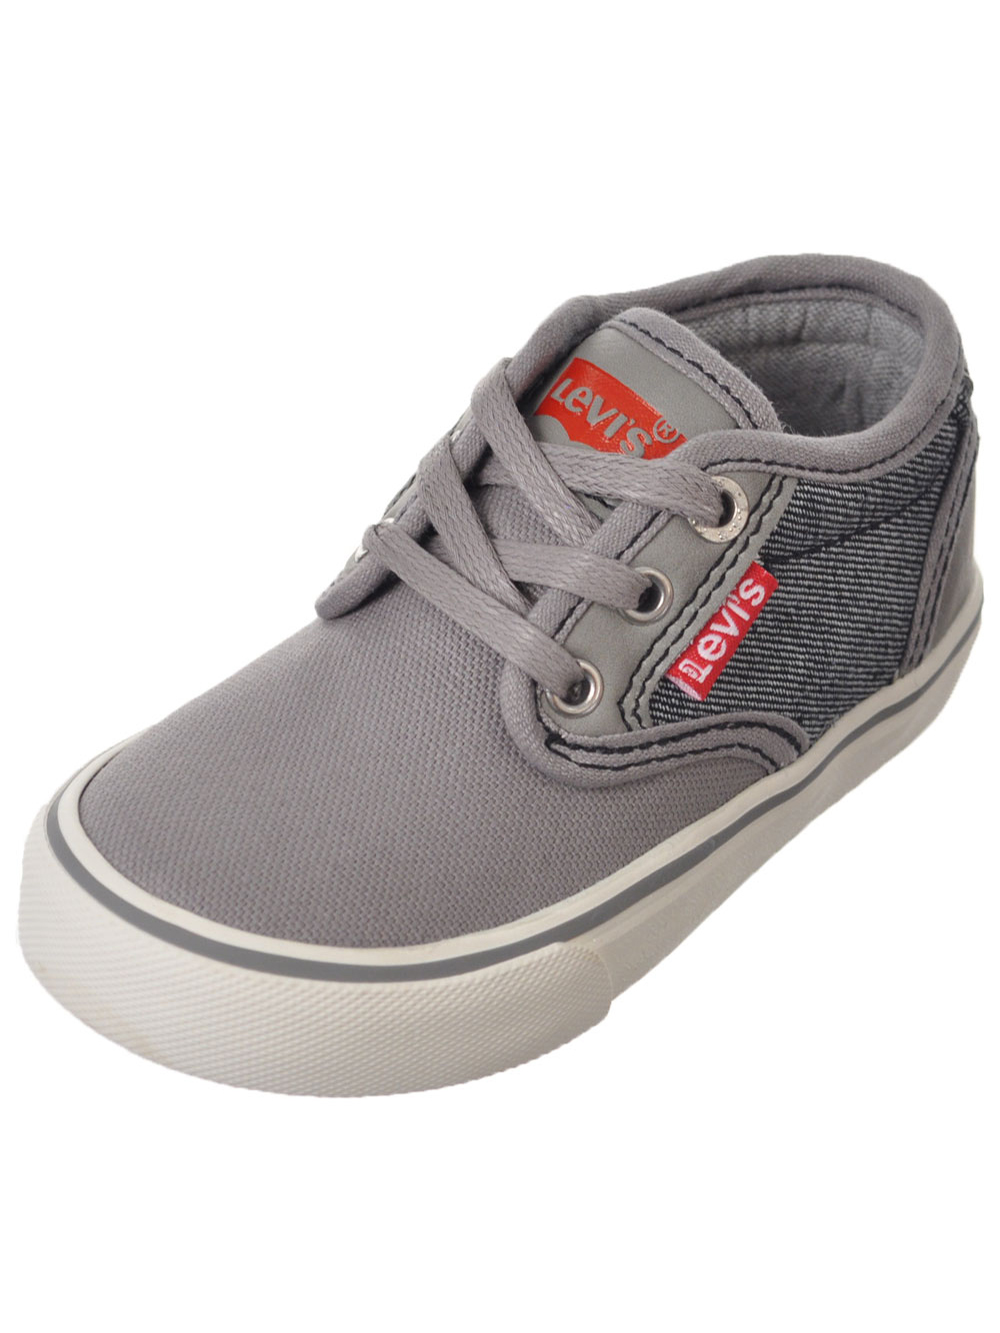 "Levi's Boys' ""Cali Denim"" Low-Top Sneakers (Toddler Sizes 5 - 10) - gray, 7 toddler"